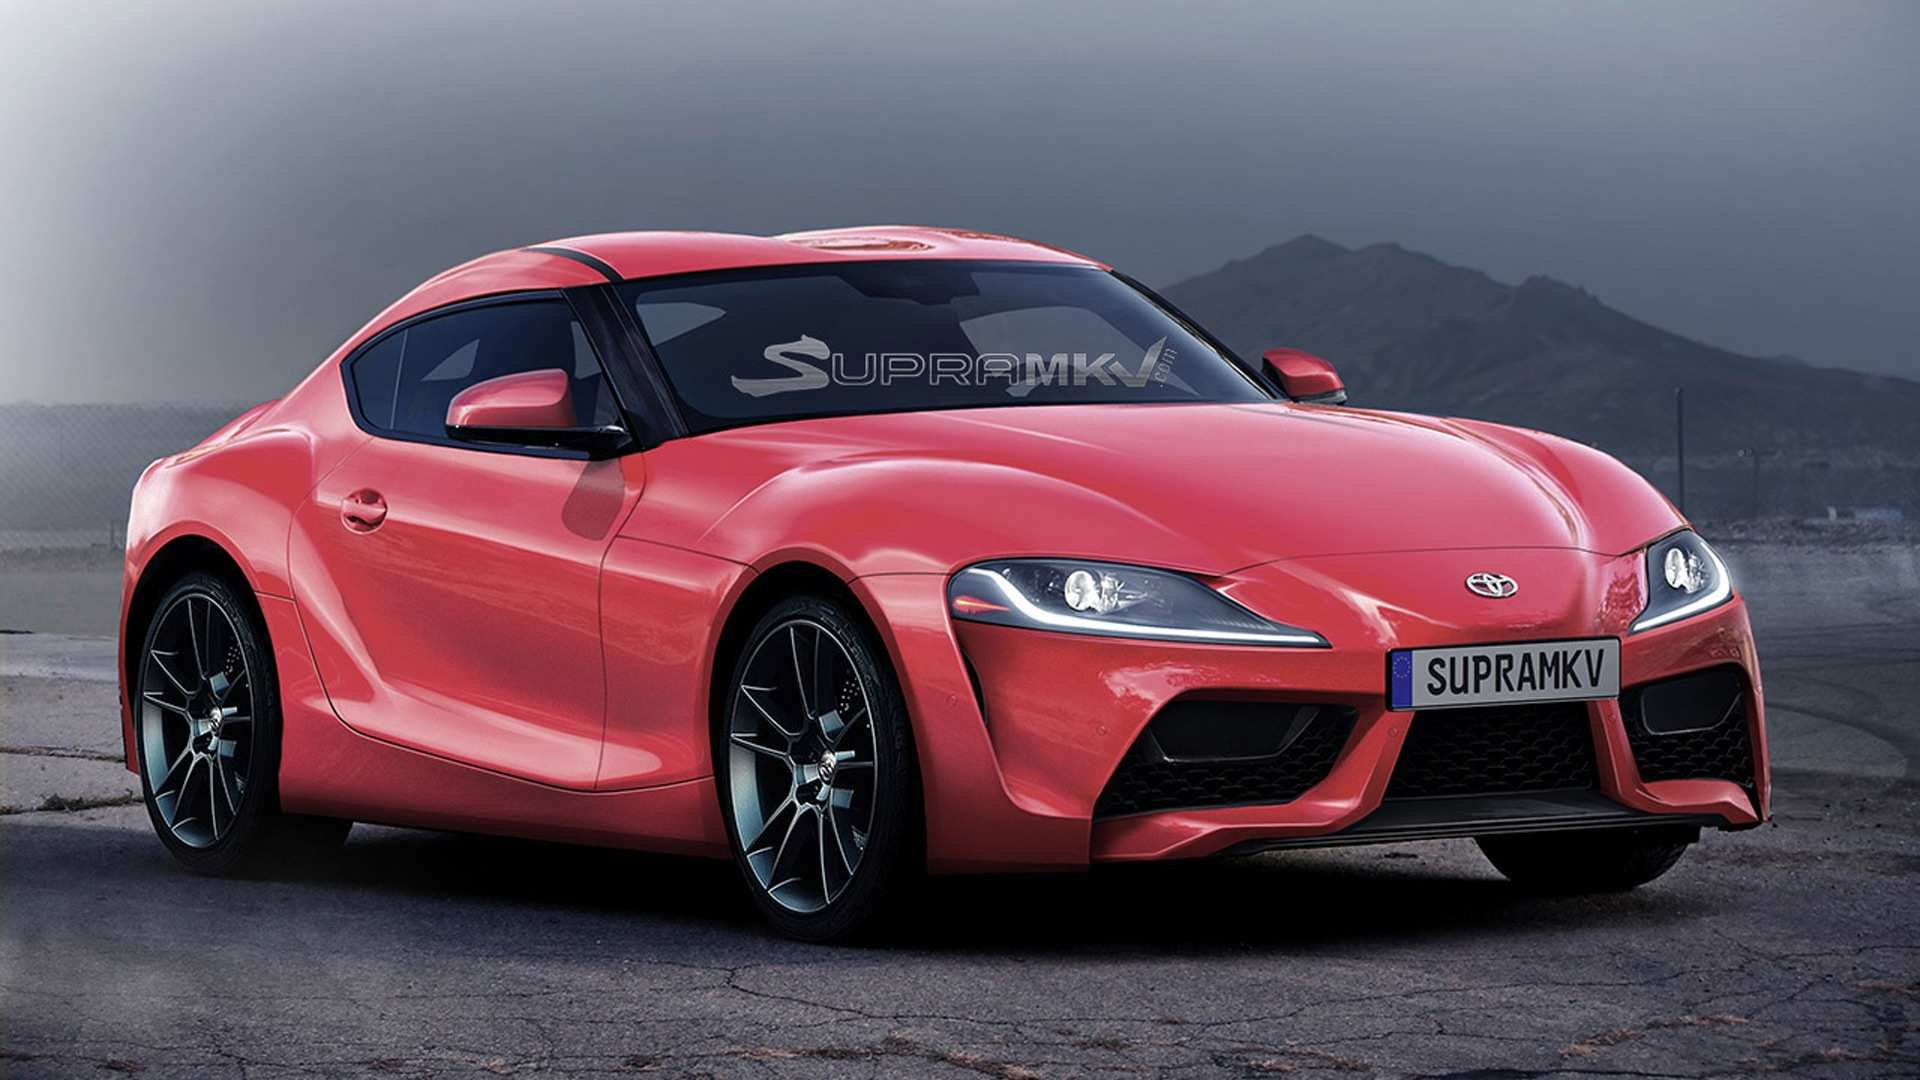 76 Concept of 2019 Toyota Supra Engine Spy Shoot with 2019 Toyota Supra Engine